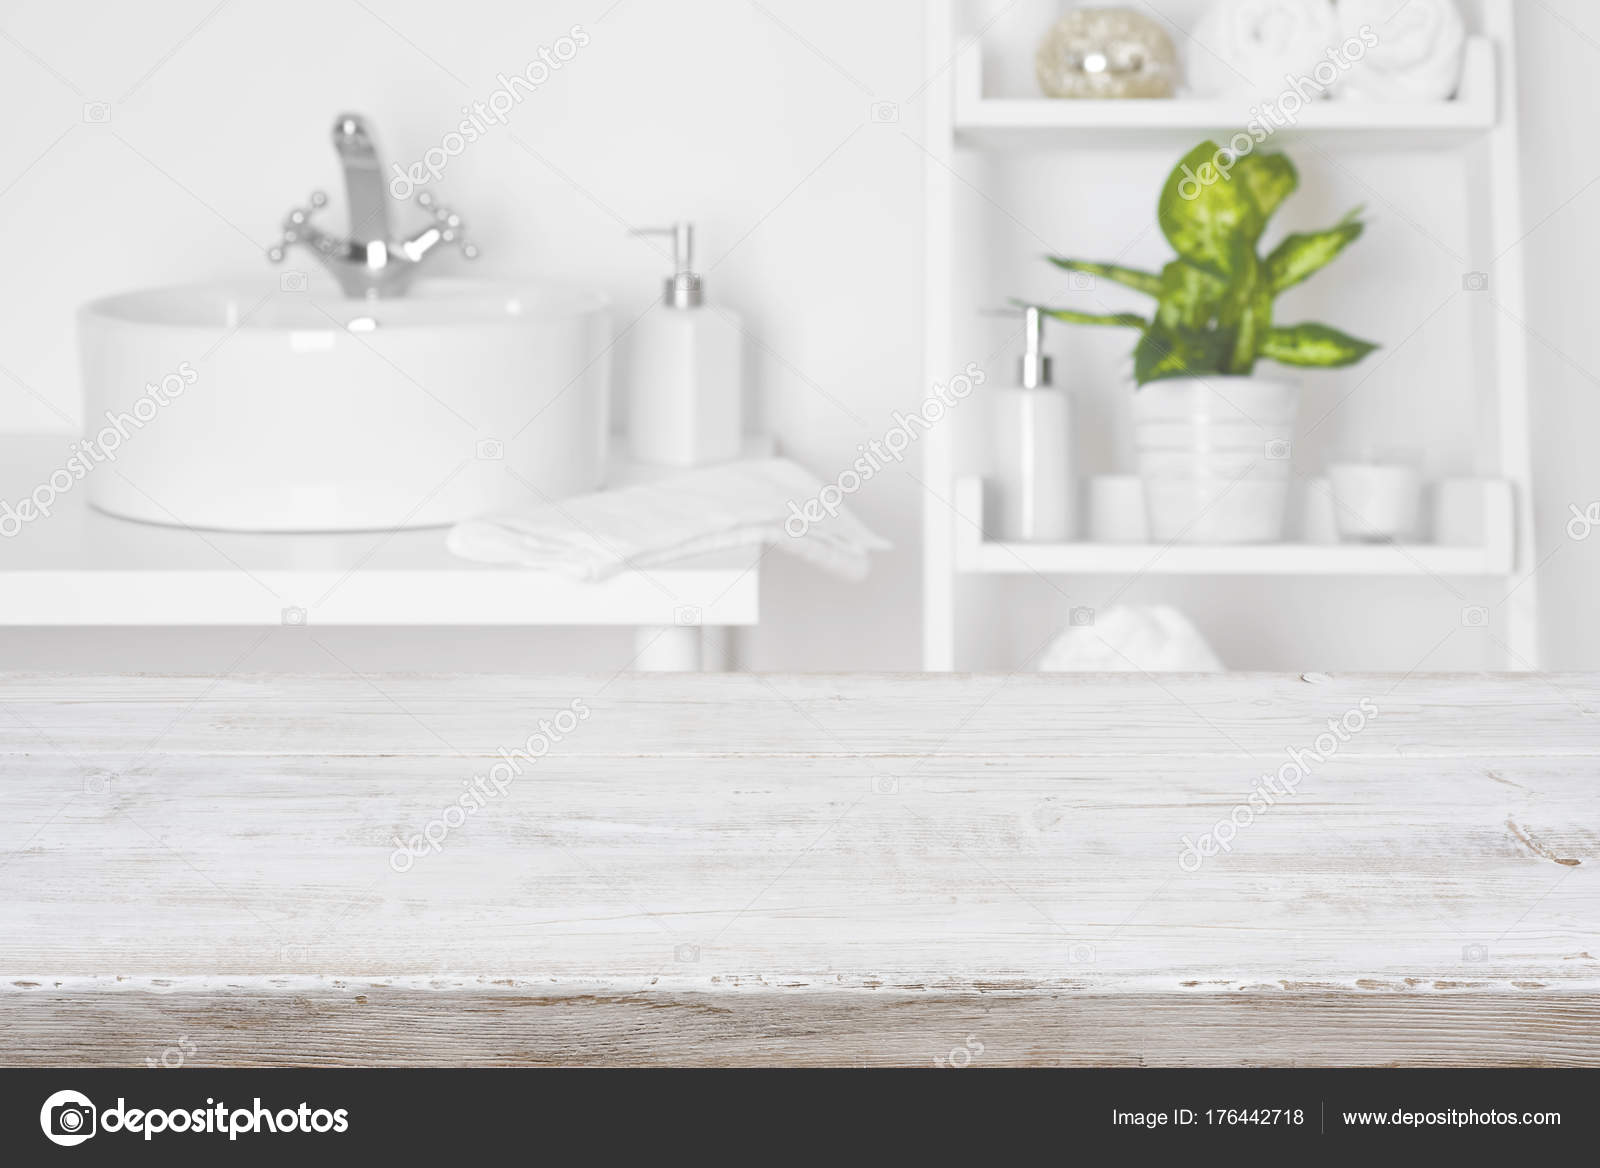 Wooden Table Front Blurred White Bathroom Shelves Background Stock Photo